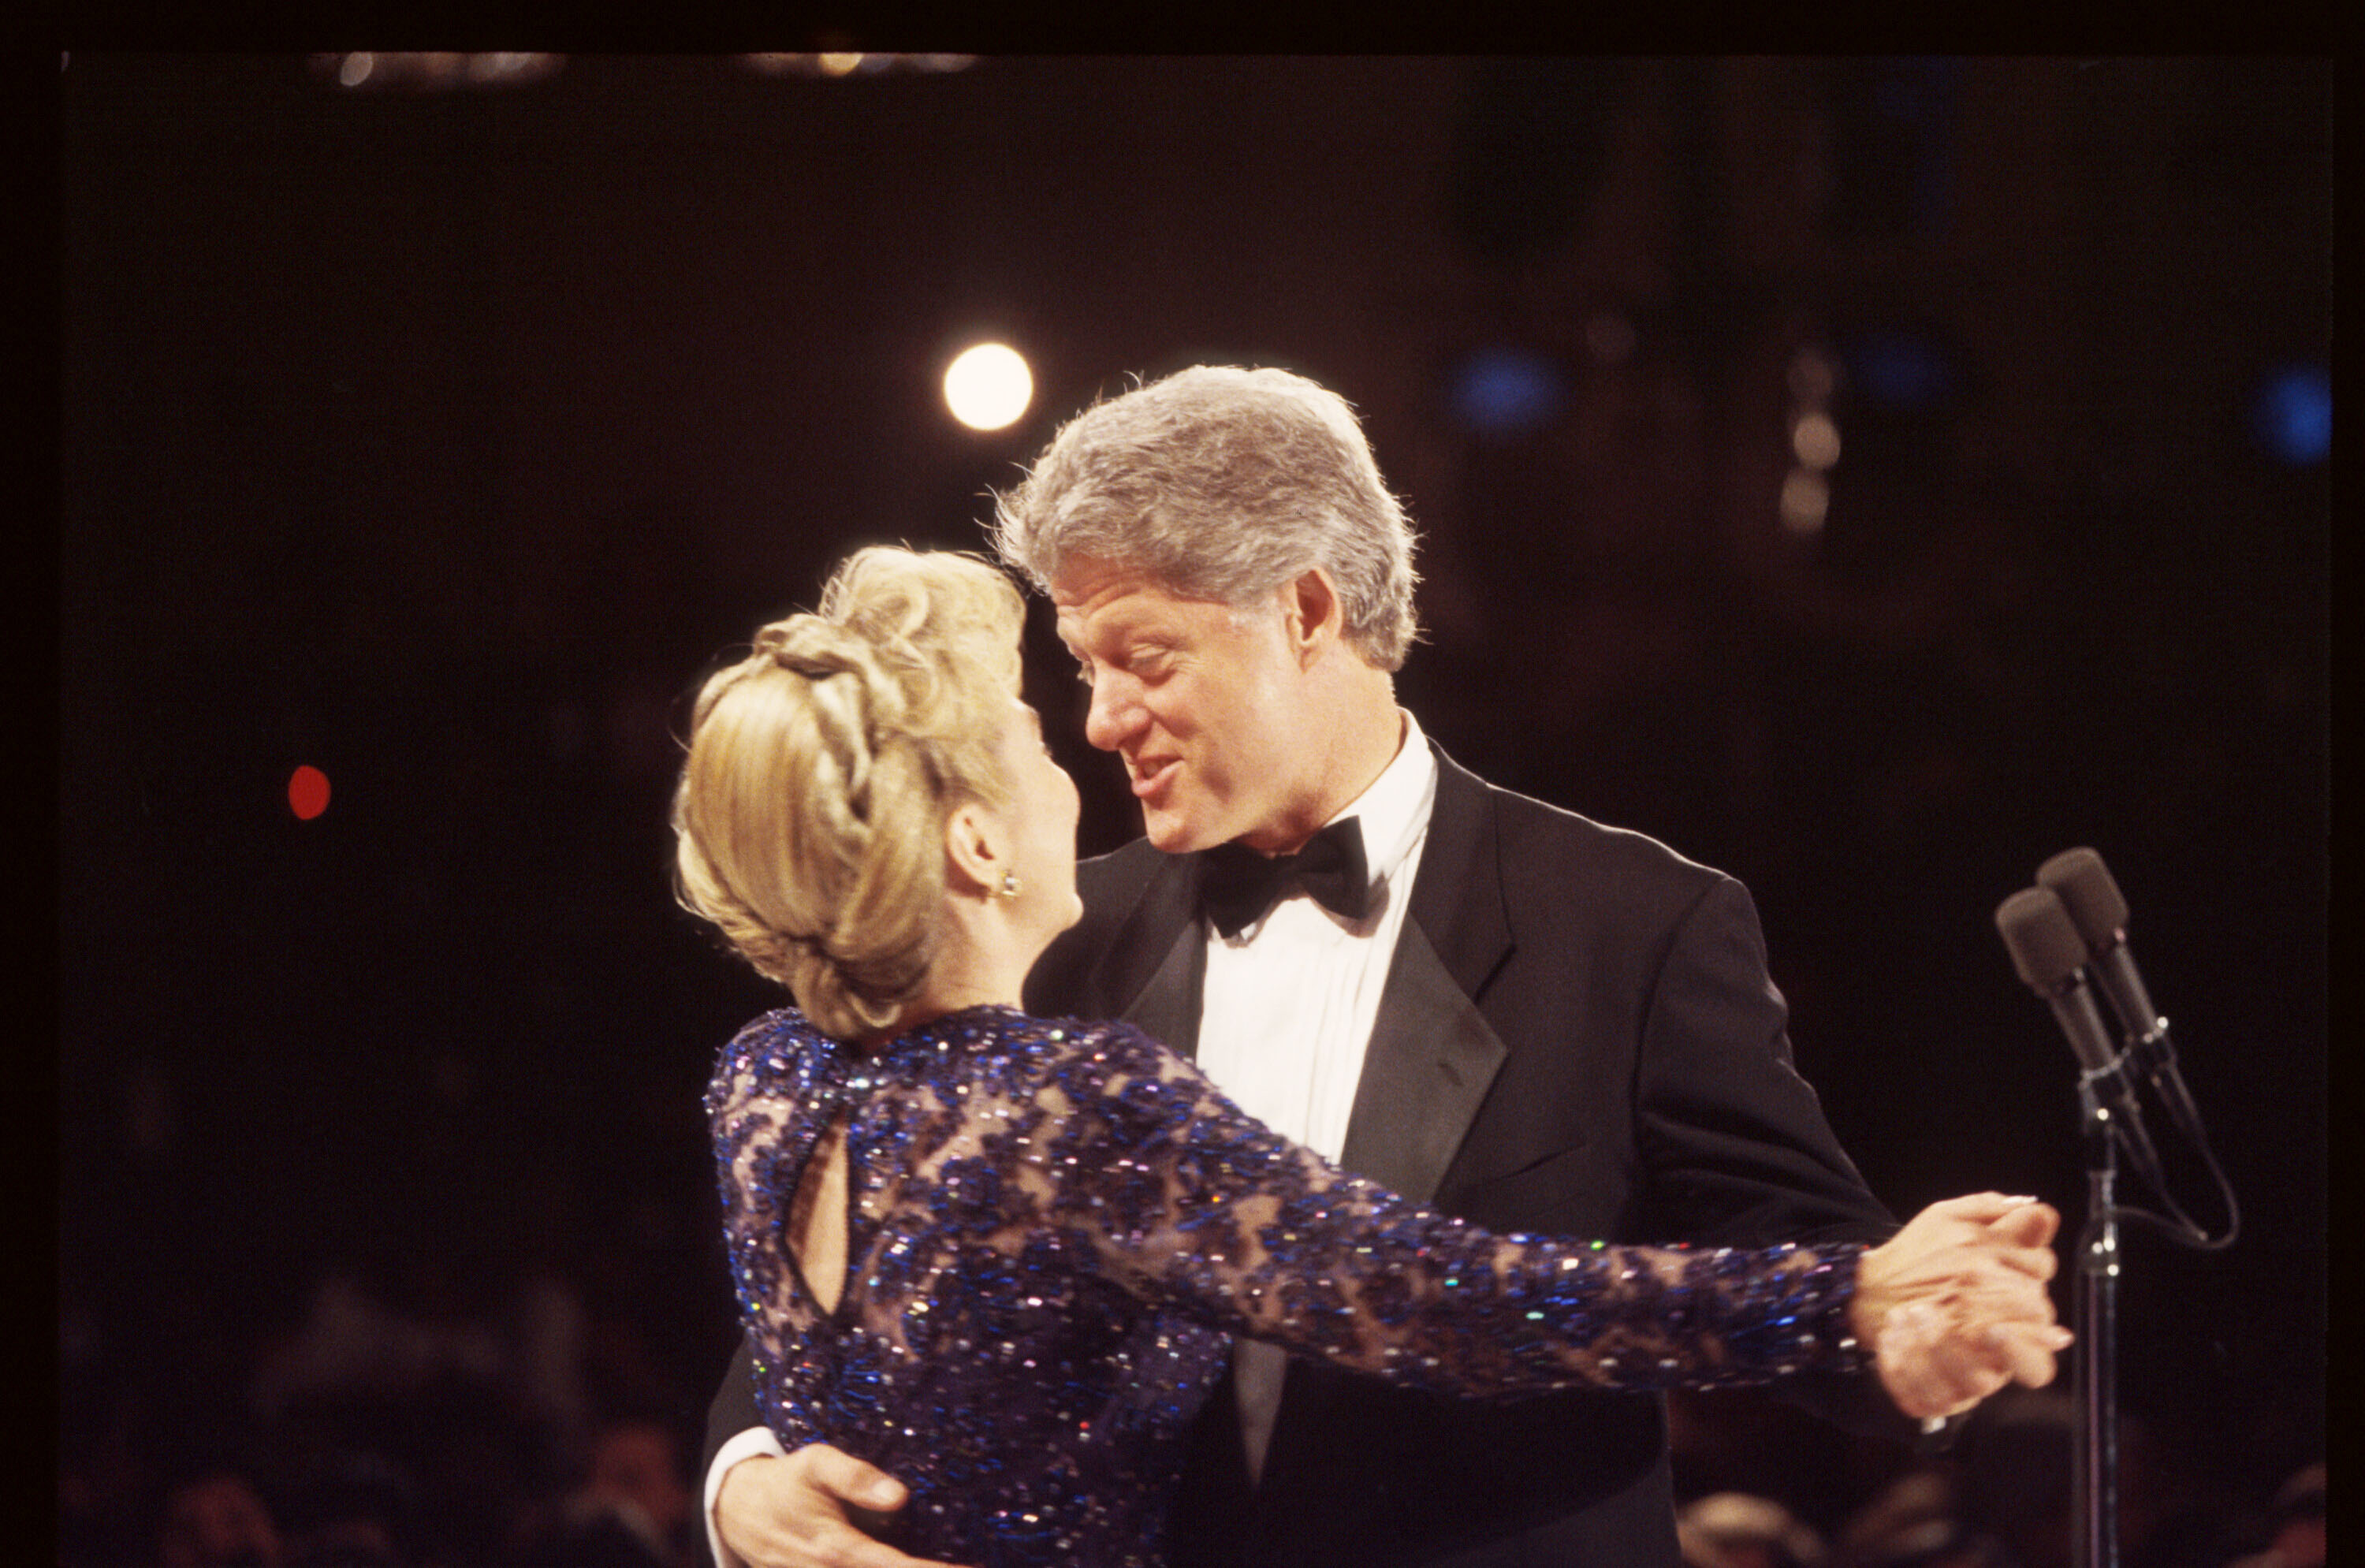 President Bill Clinton dances with First Lady Hillary Clinton on stage on Jan. 20, 1993 in Washington. Eleven inaugural balls were held on the same evening in honor of President Clinton's election.